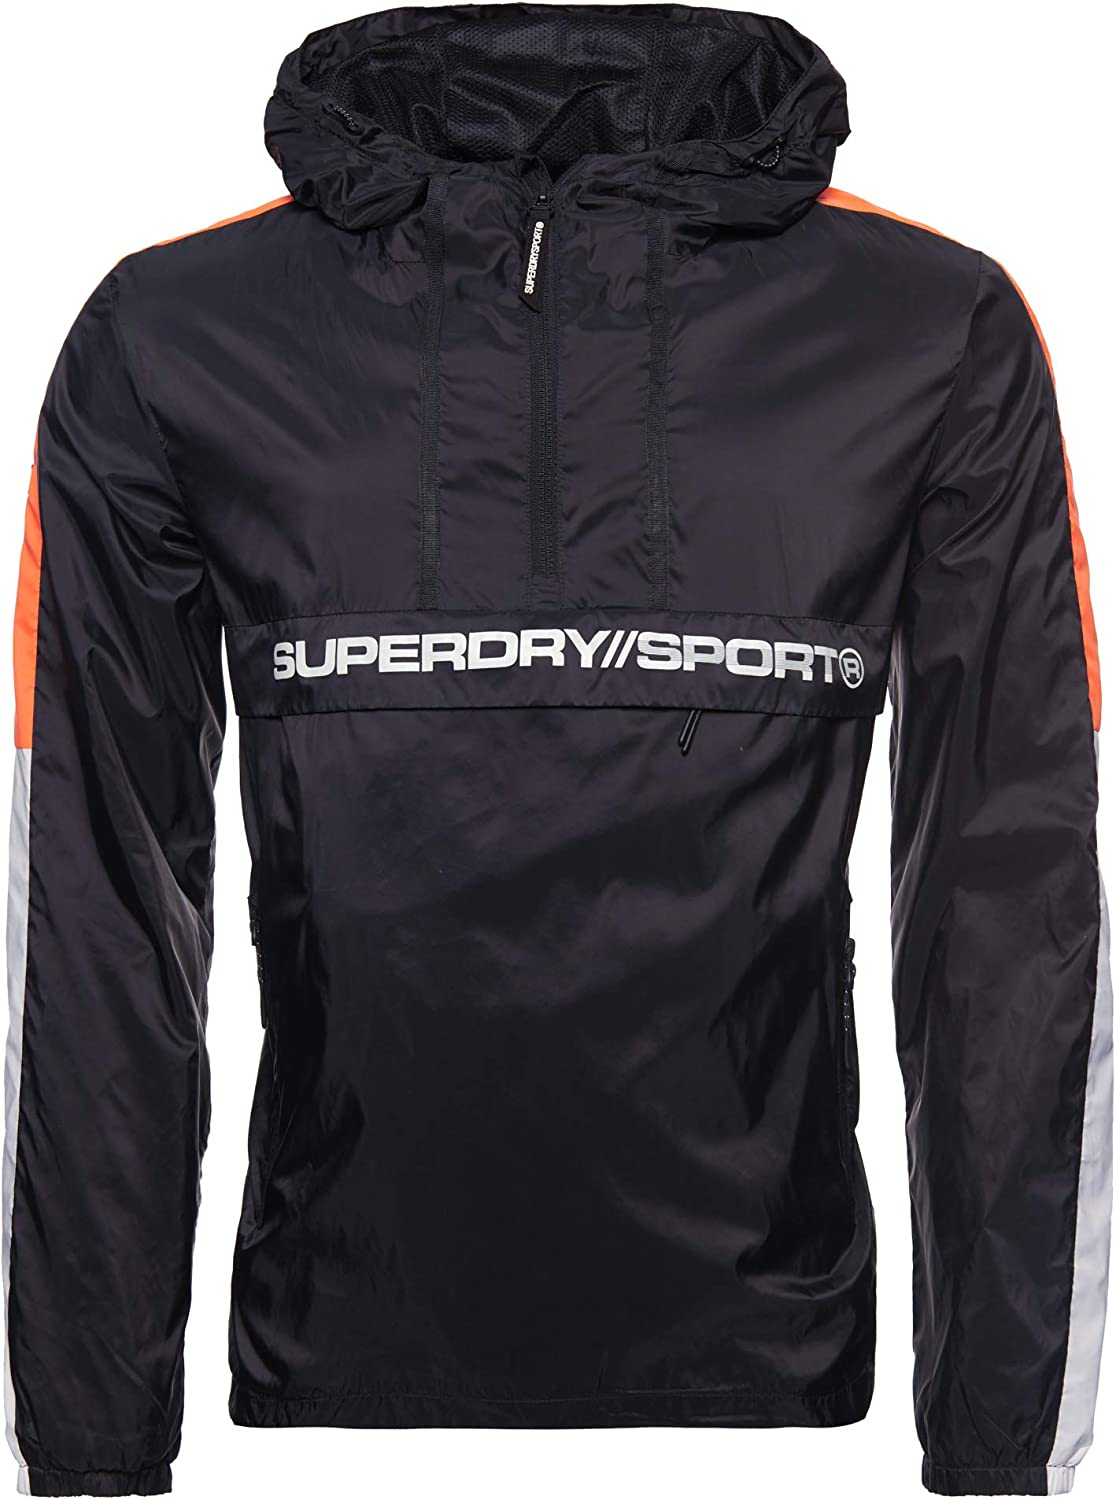 Superdry Popular brand in the world Streetsport Jacket Beauty products Overhead